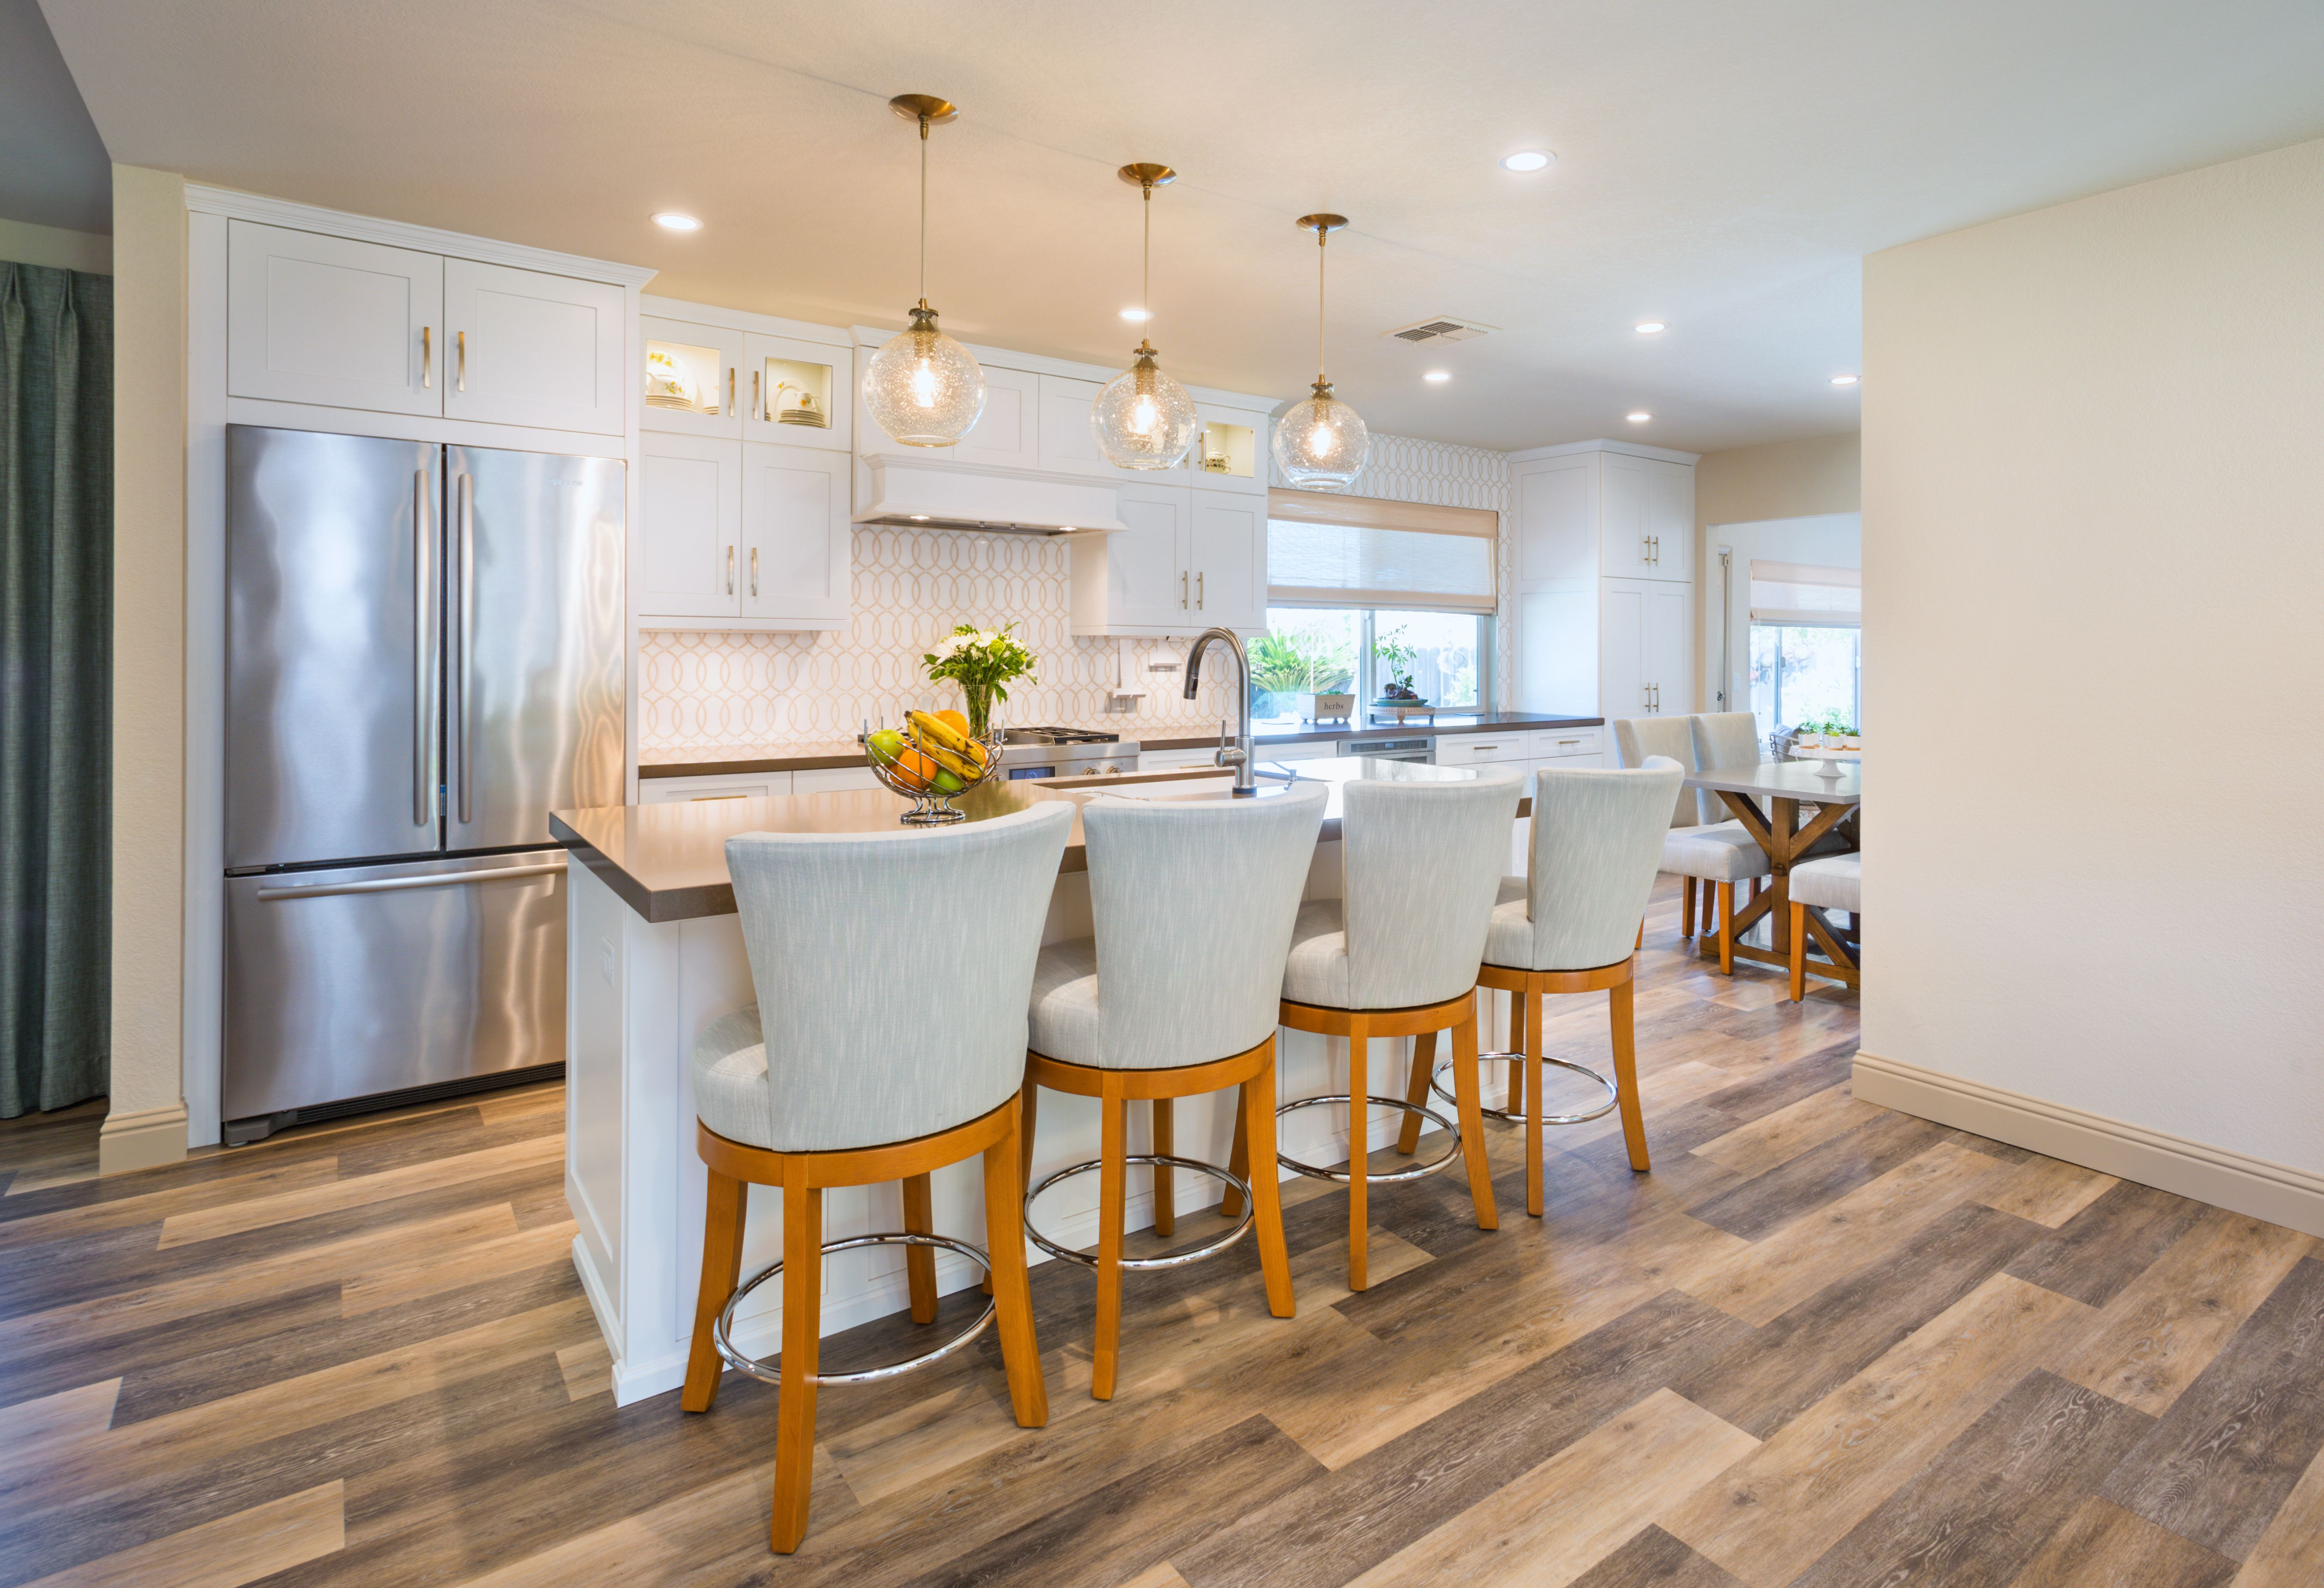 Interior Decorating Company In Stockton Ca Kathleenjennison Com Interior Design Kitchen Kitchen Inspiration Design Kitchen Interior